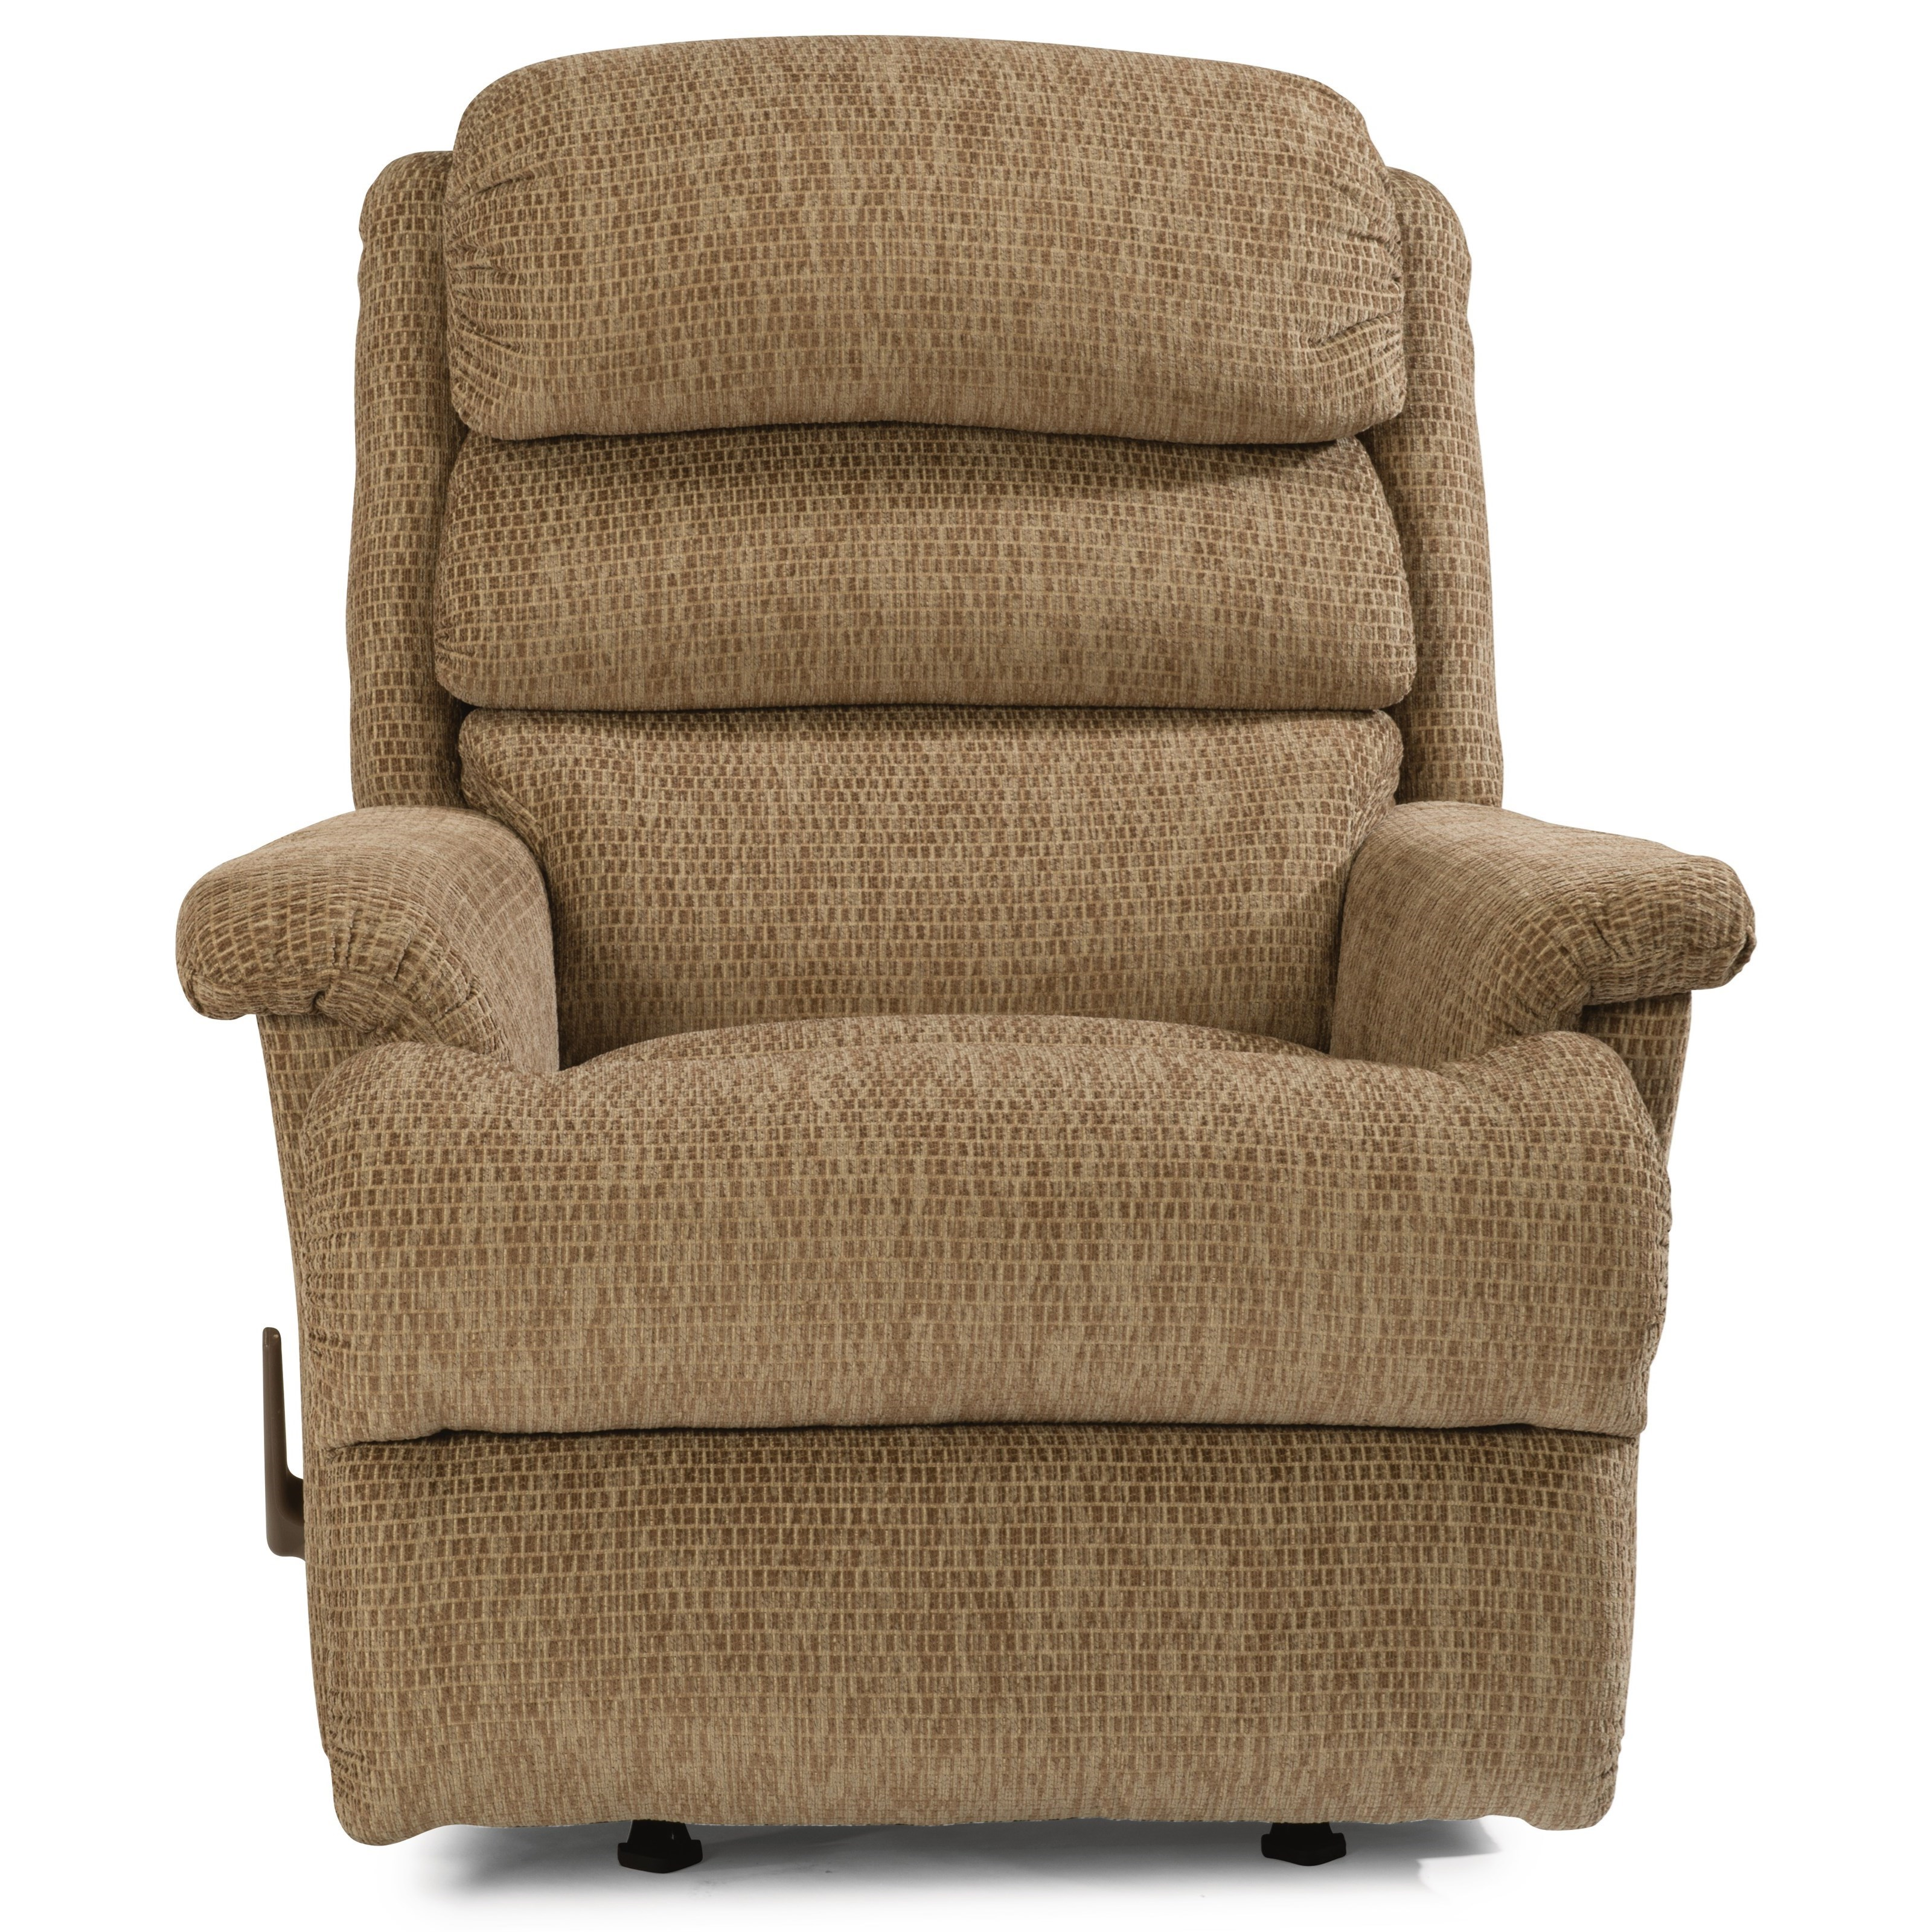 Accents Rocking Recliner by Flexsteel at A1 Furniture & Mattress